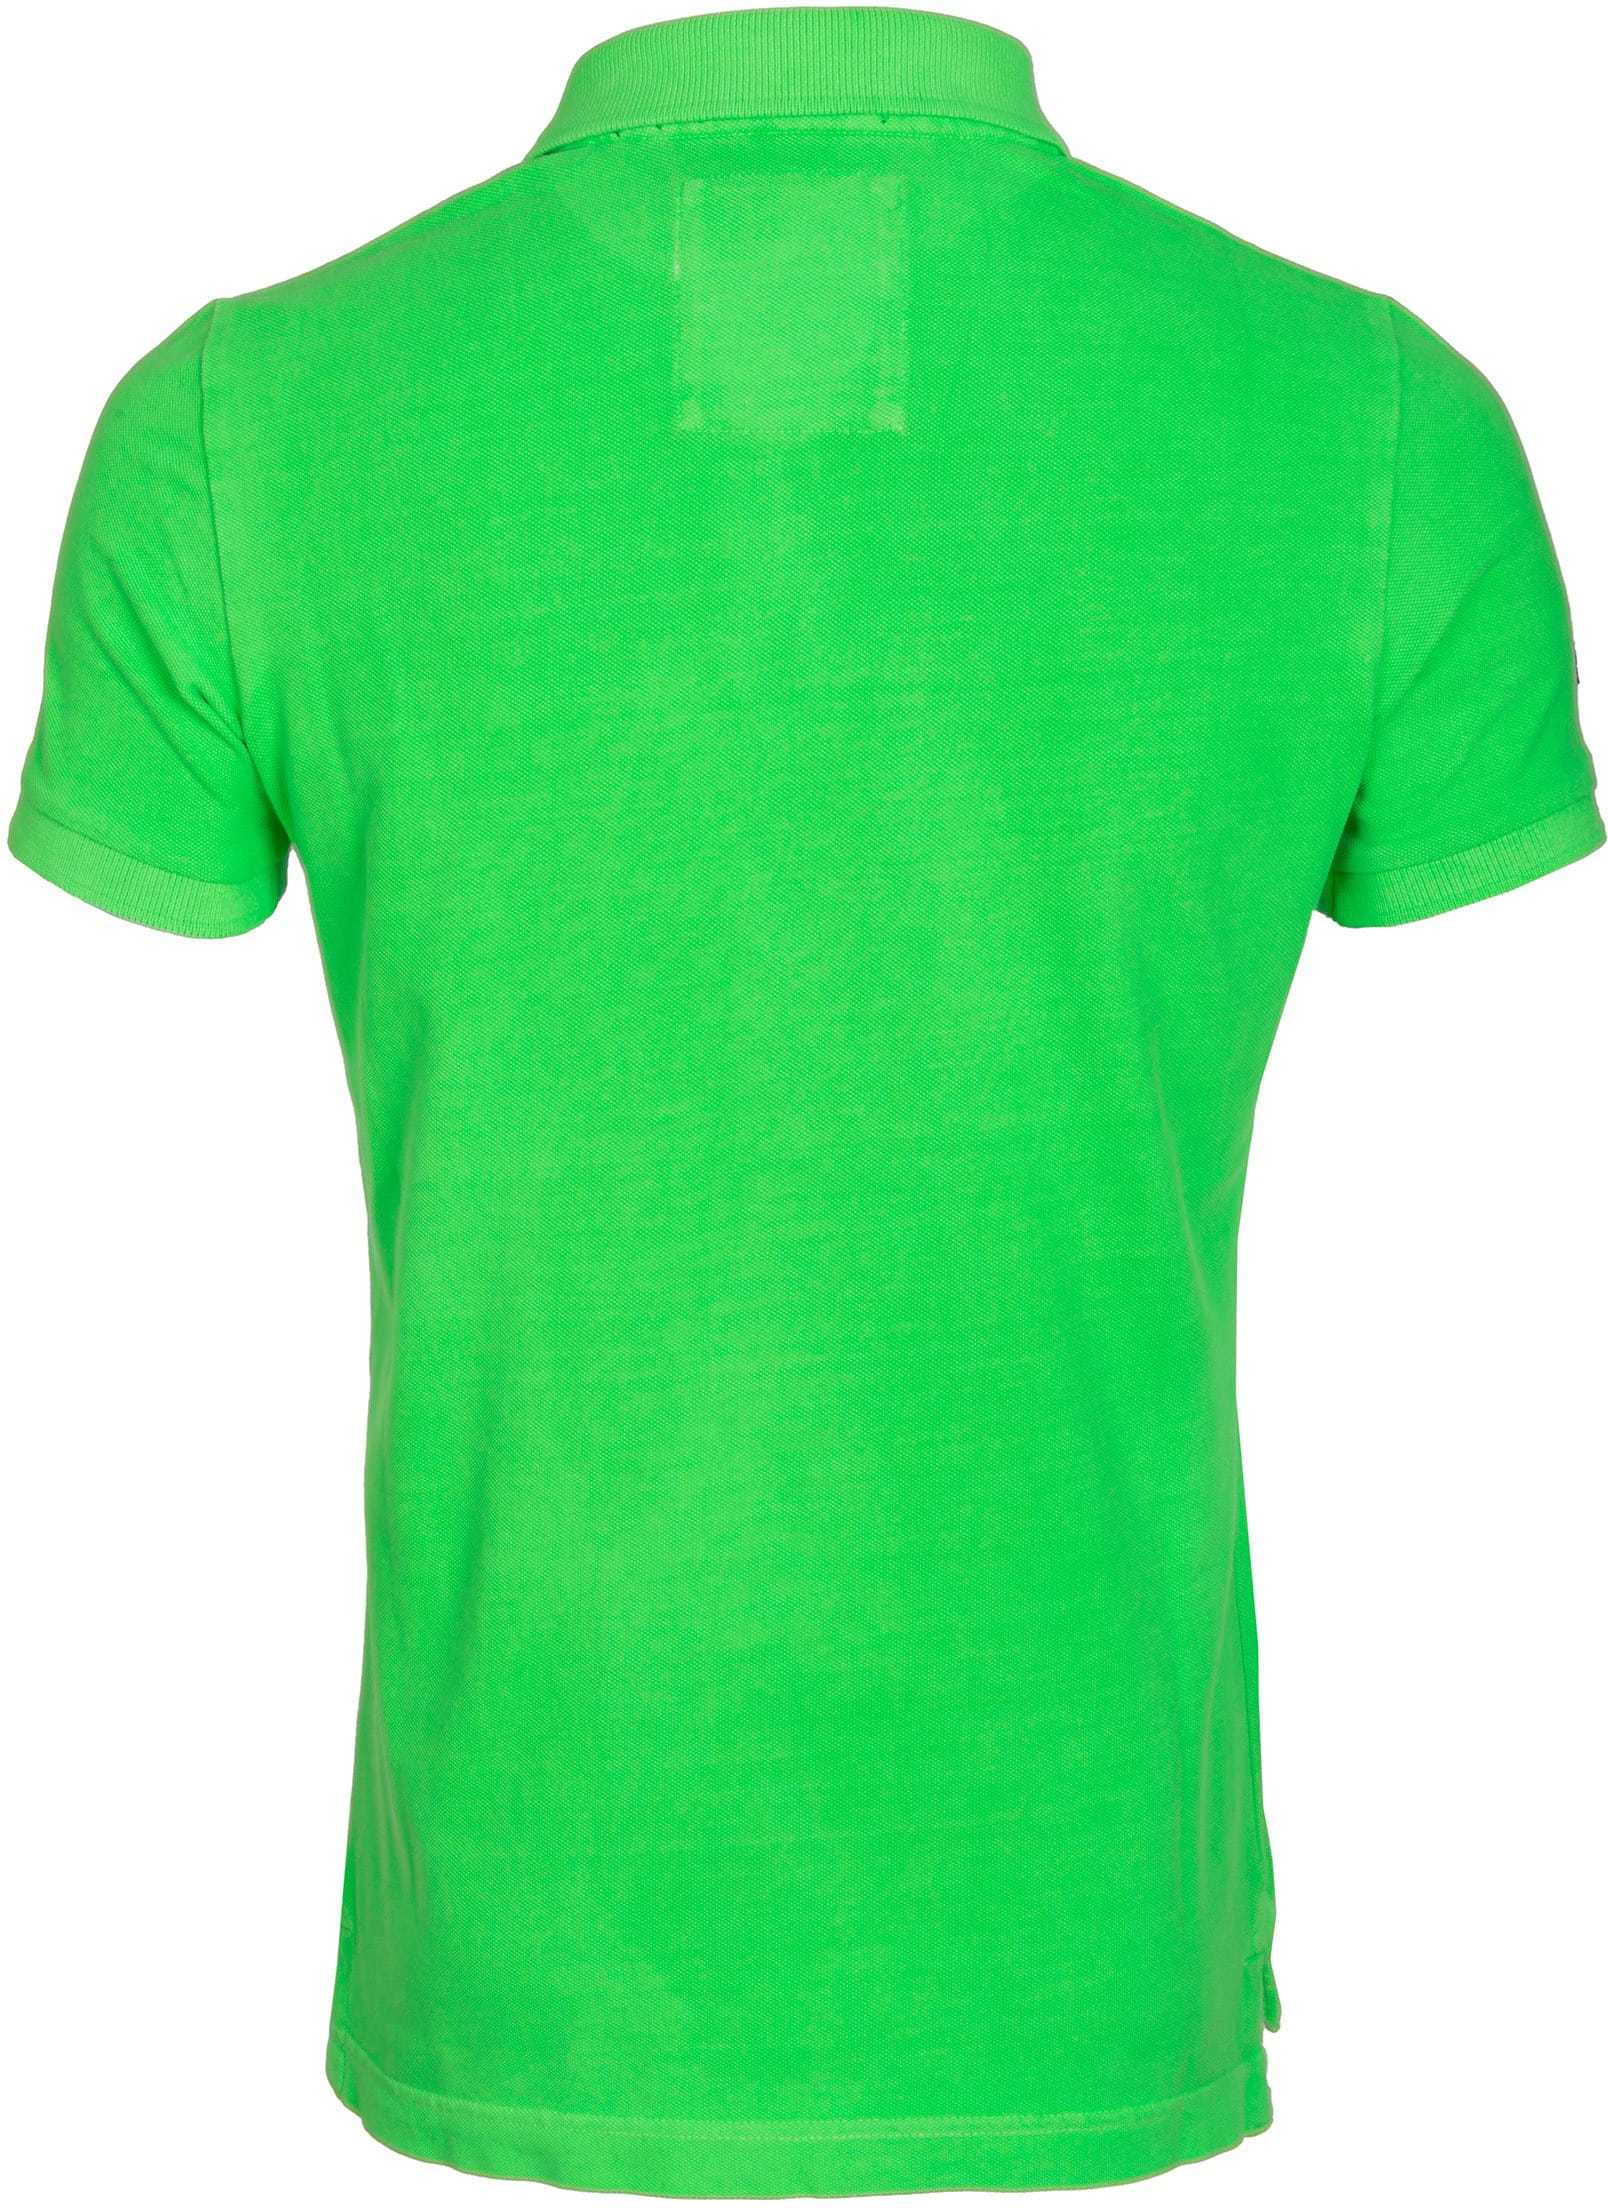 Superdry Vintage Destroyed Polo Neon Green foto 3